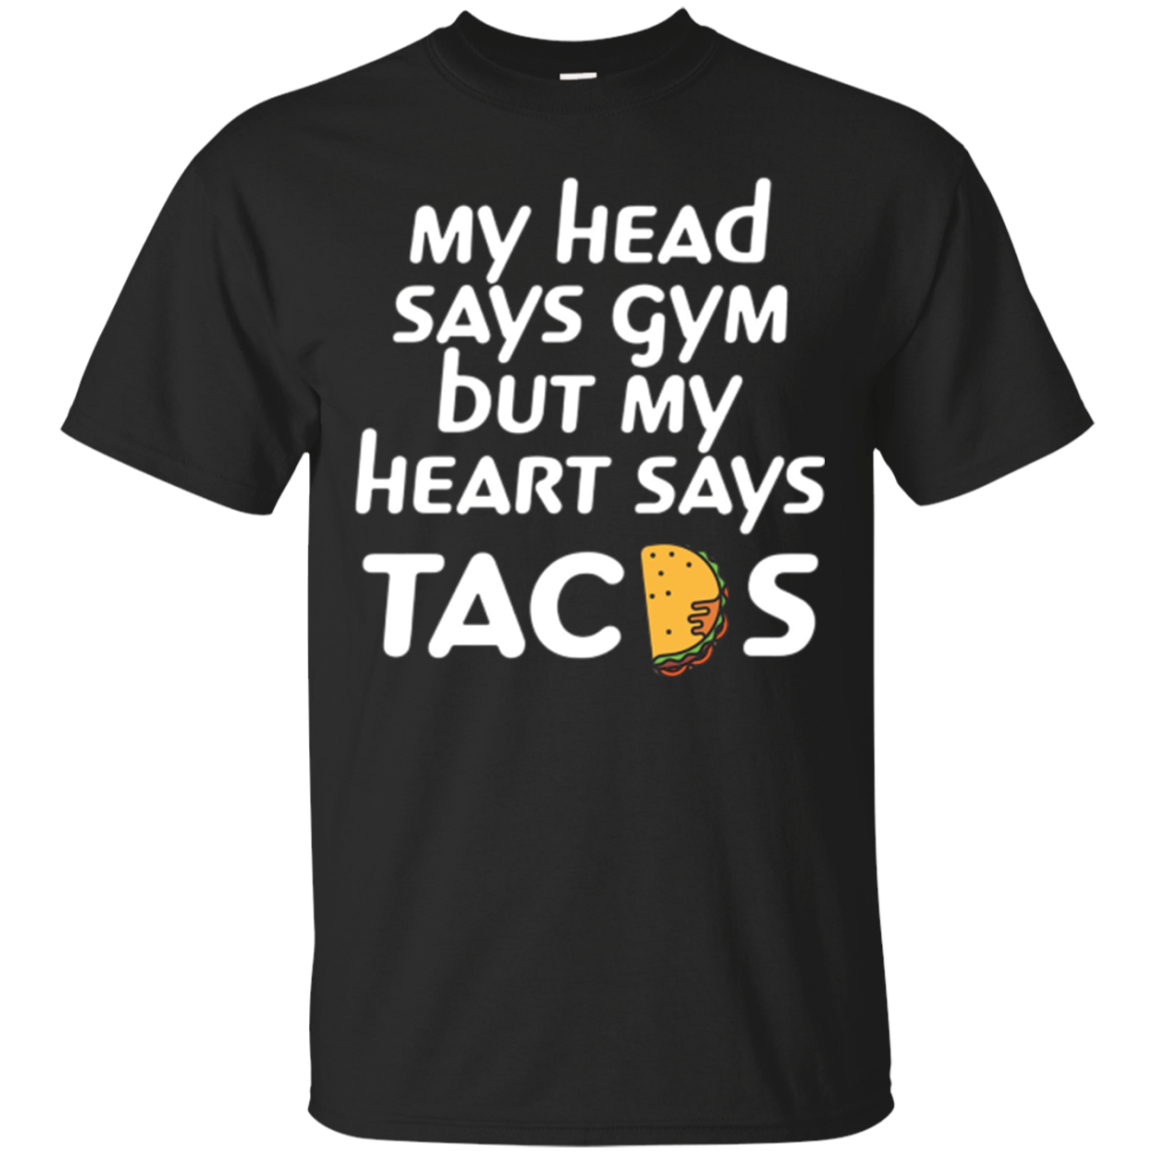 Tacos gym t-shirt funny humor workout athletic fitness shirt